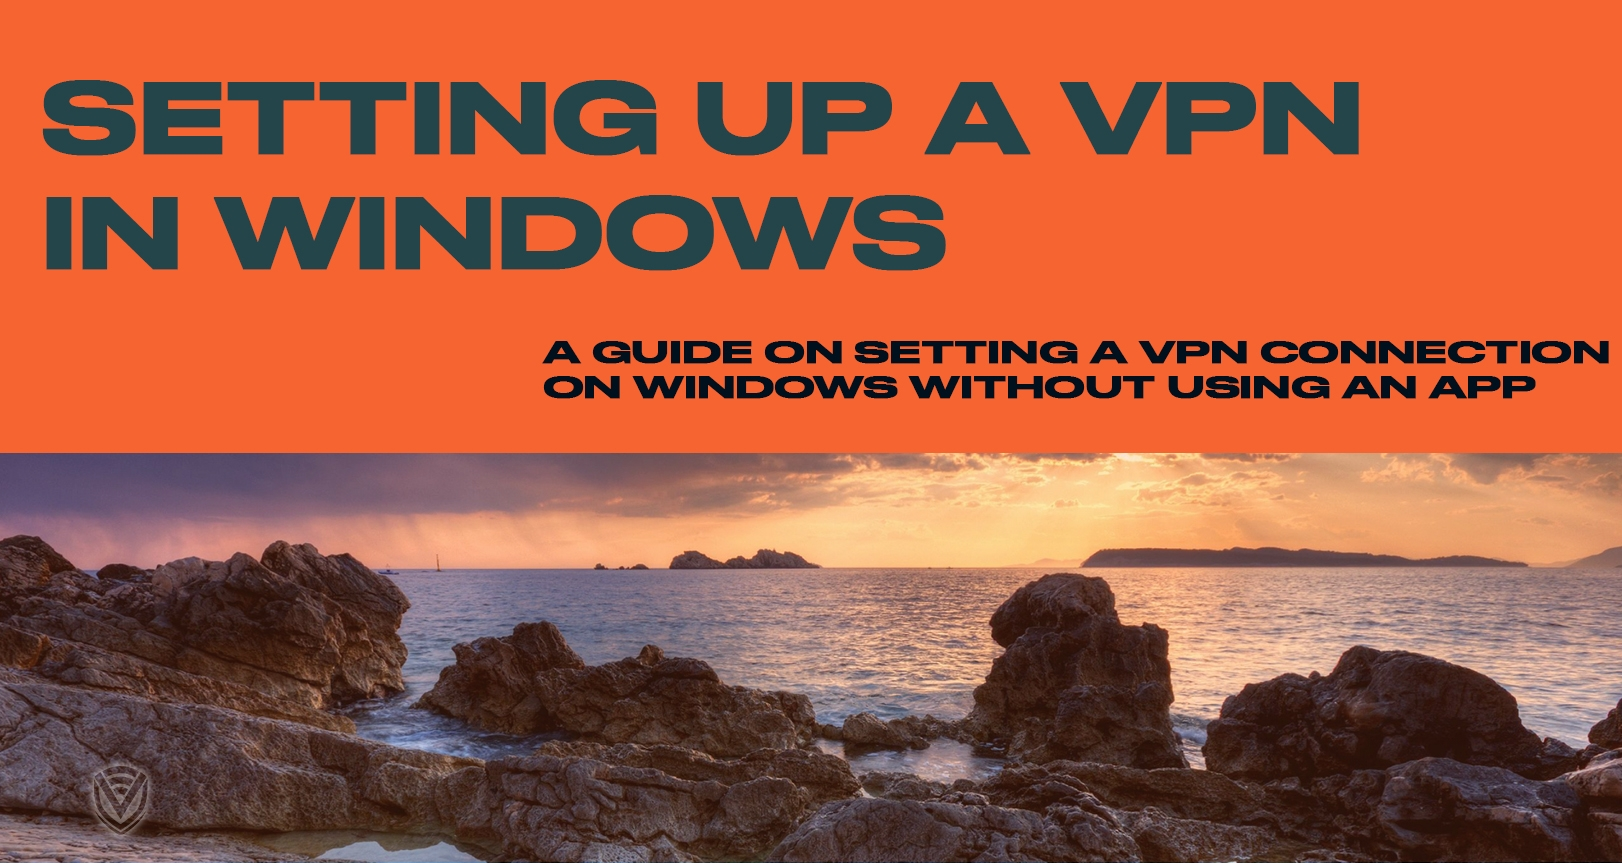 How To Install a VPN on Windows